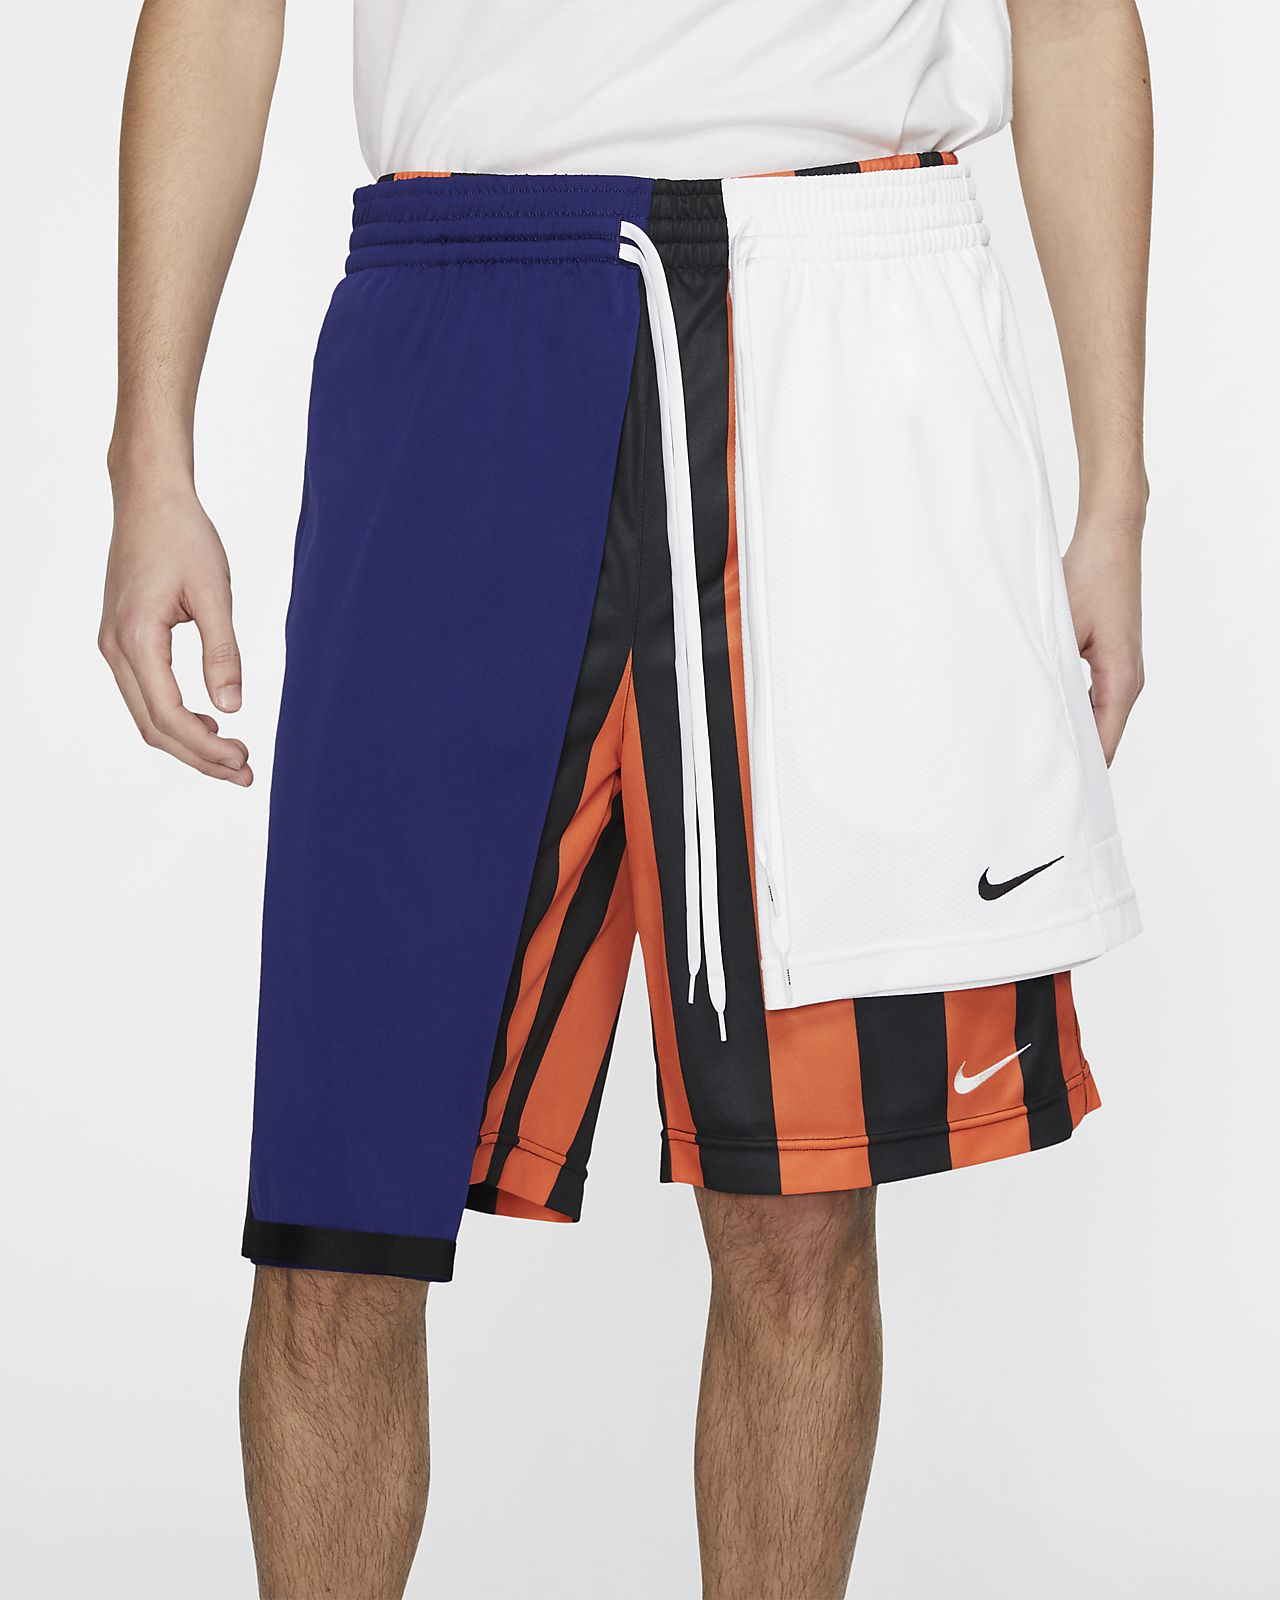 f8e2809391d7 Men s Shorts. NikeLab Collection. CAD 100. Low Resolution ...